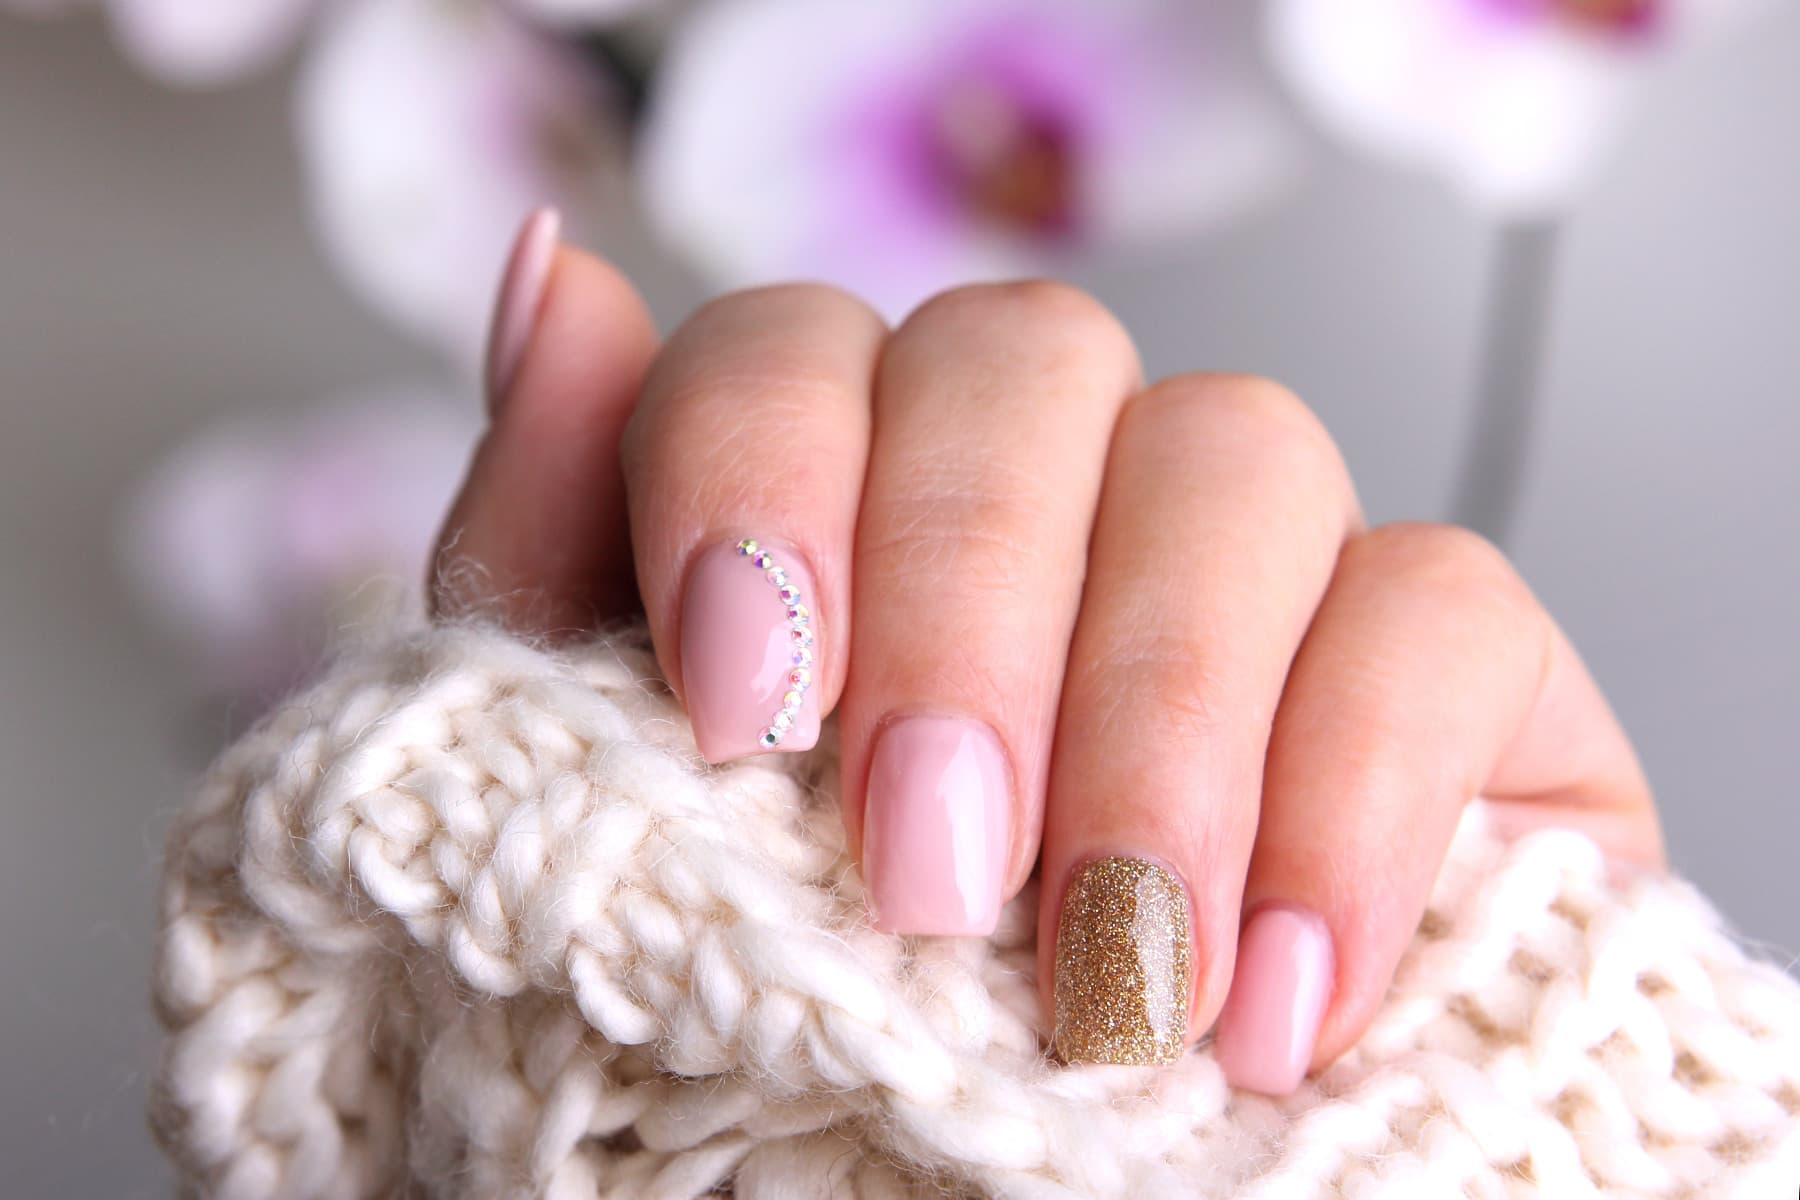 Artificial Nails: Types, Problems, and Treatments